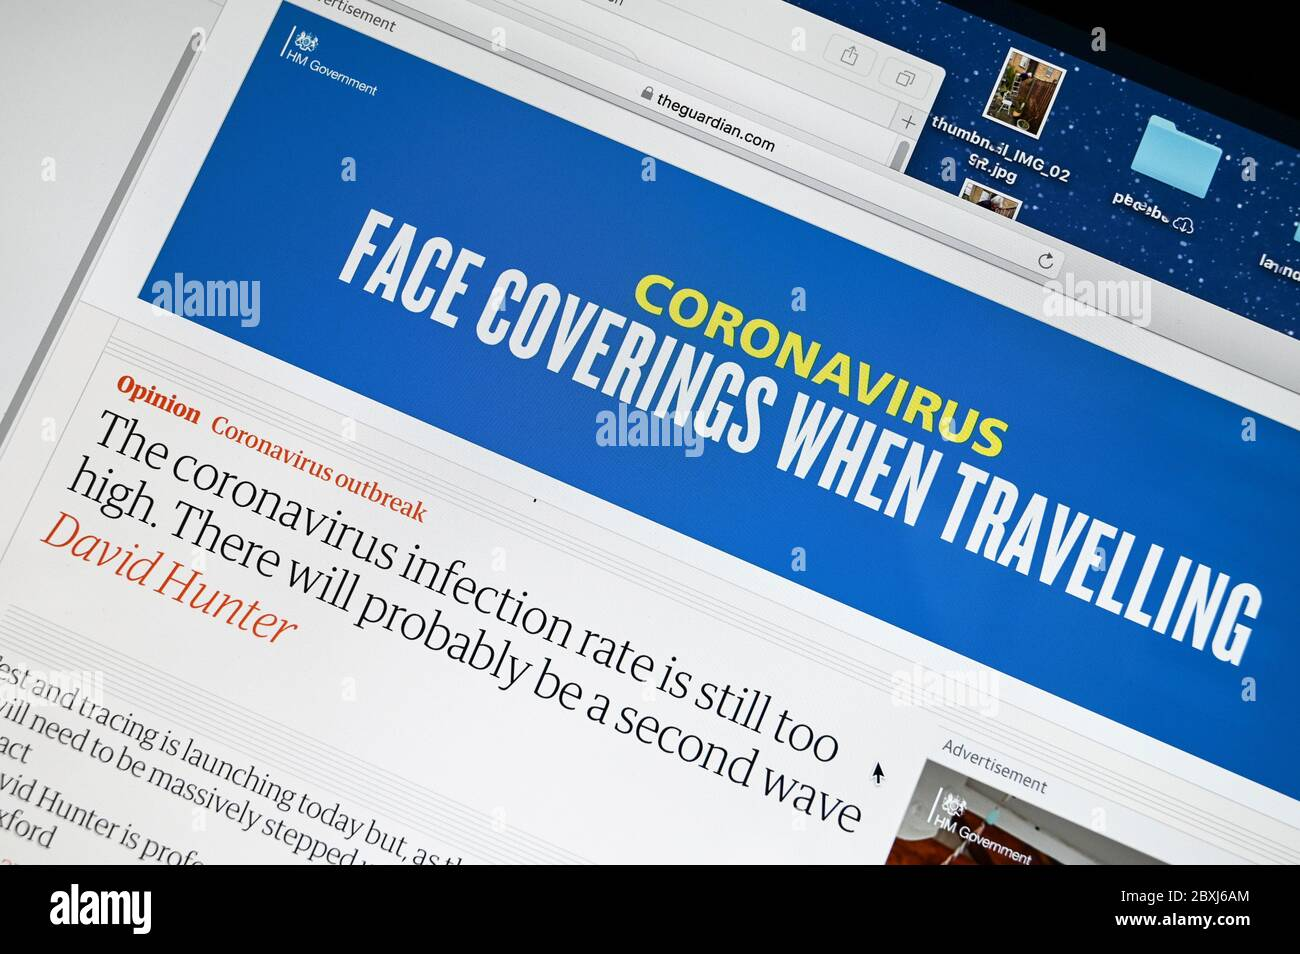 """UK Government Coronavirus public information advert """"Face coverings when travelling"""" above an article """"infection rate is still too high"""". Stock Photo"""